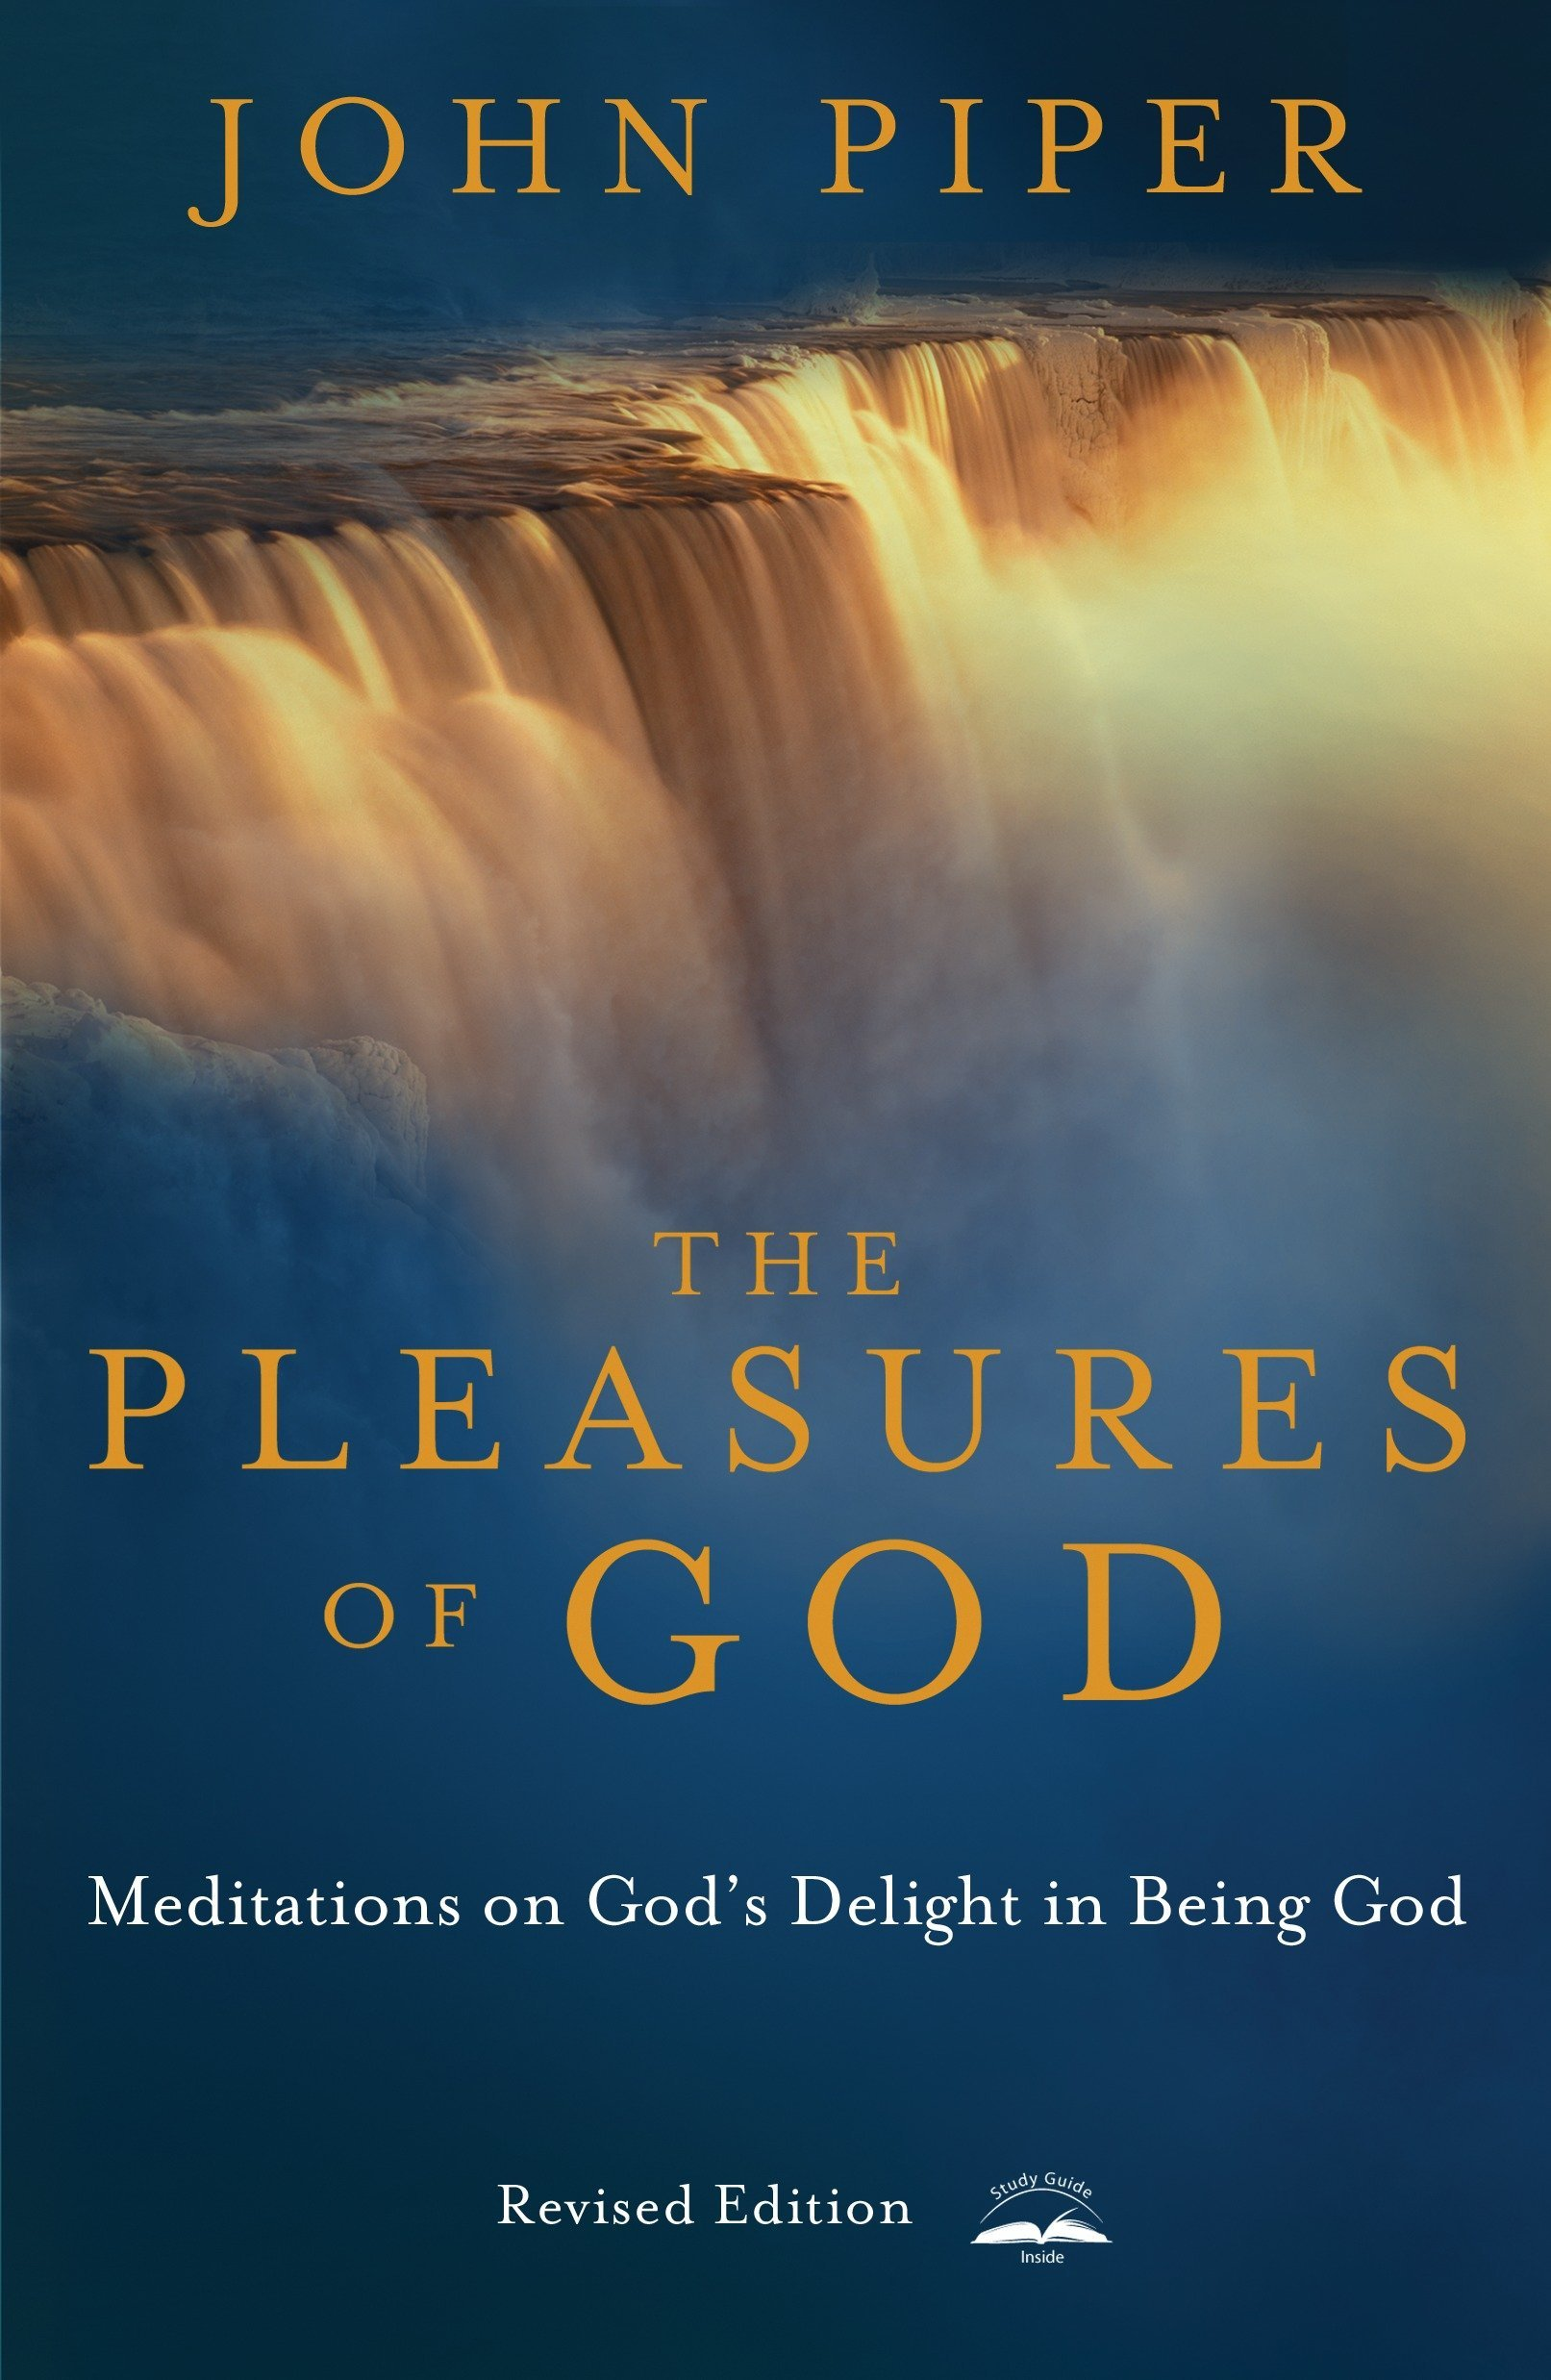 Image result for the pleasures of god